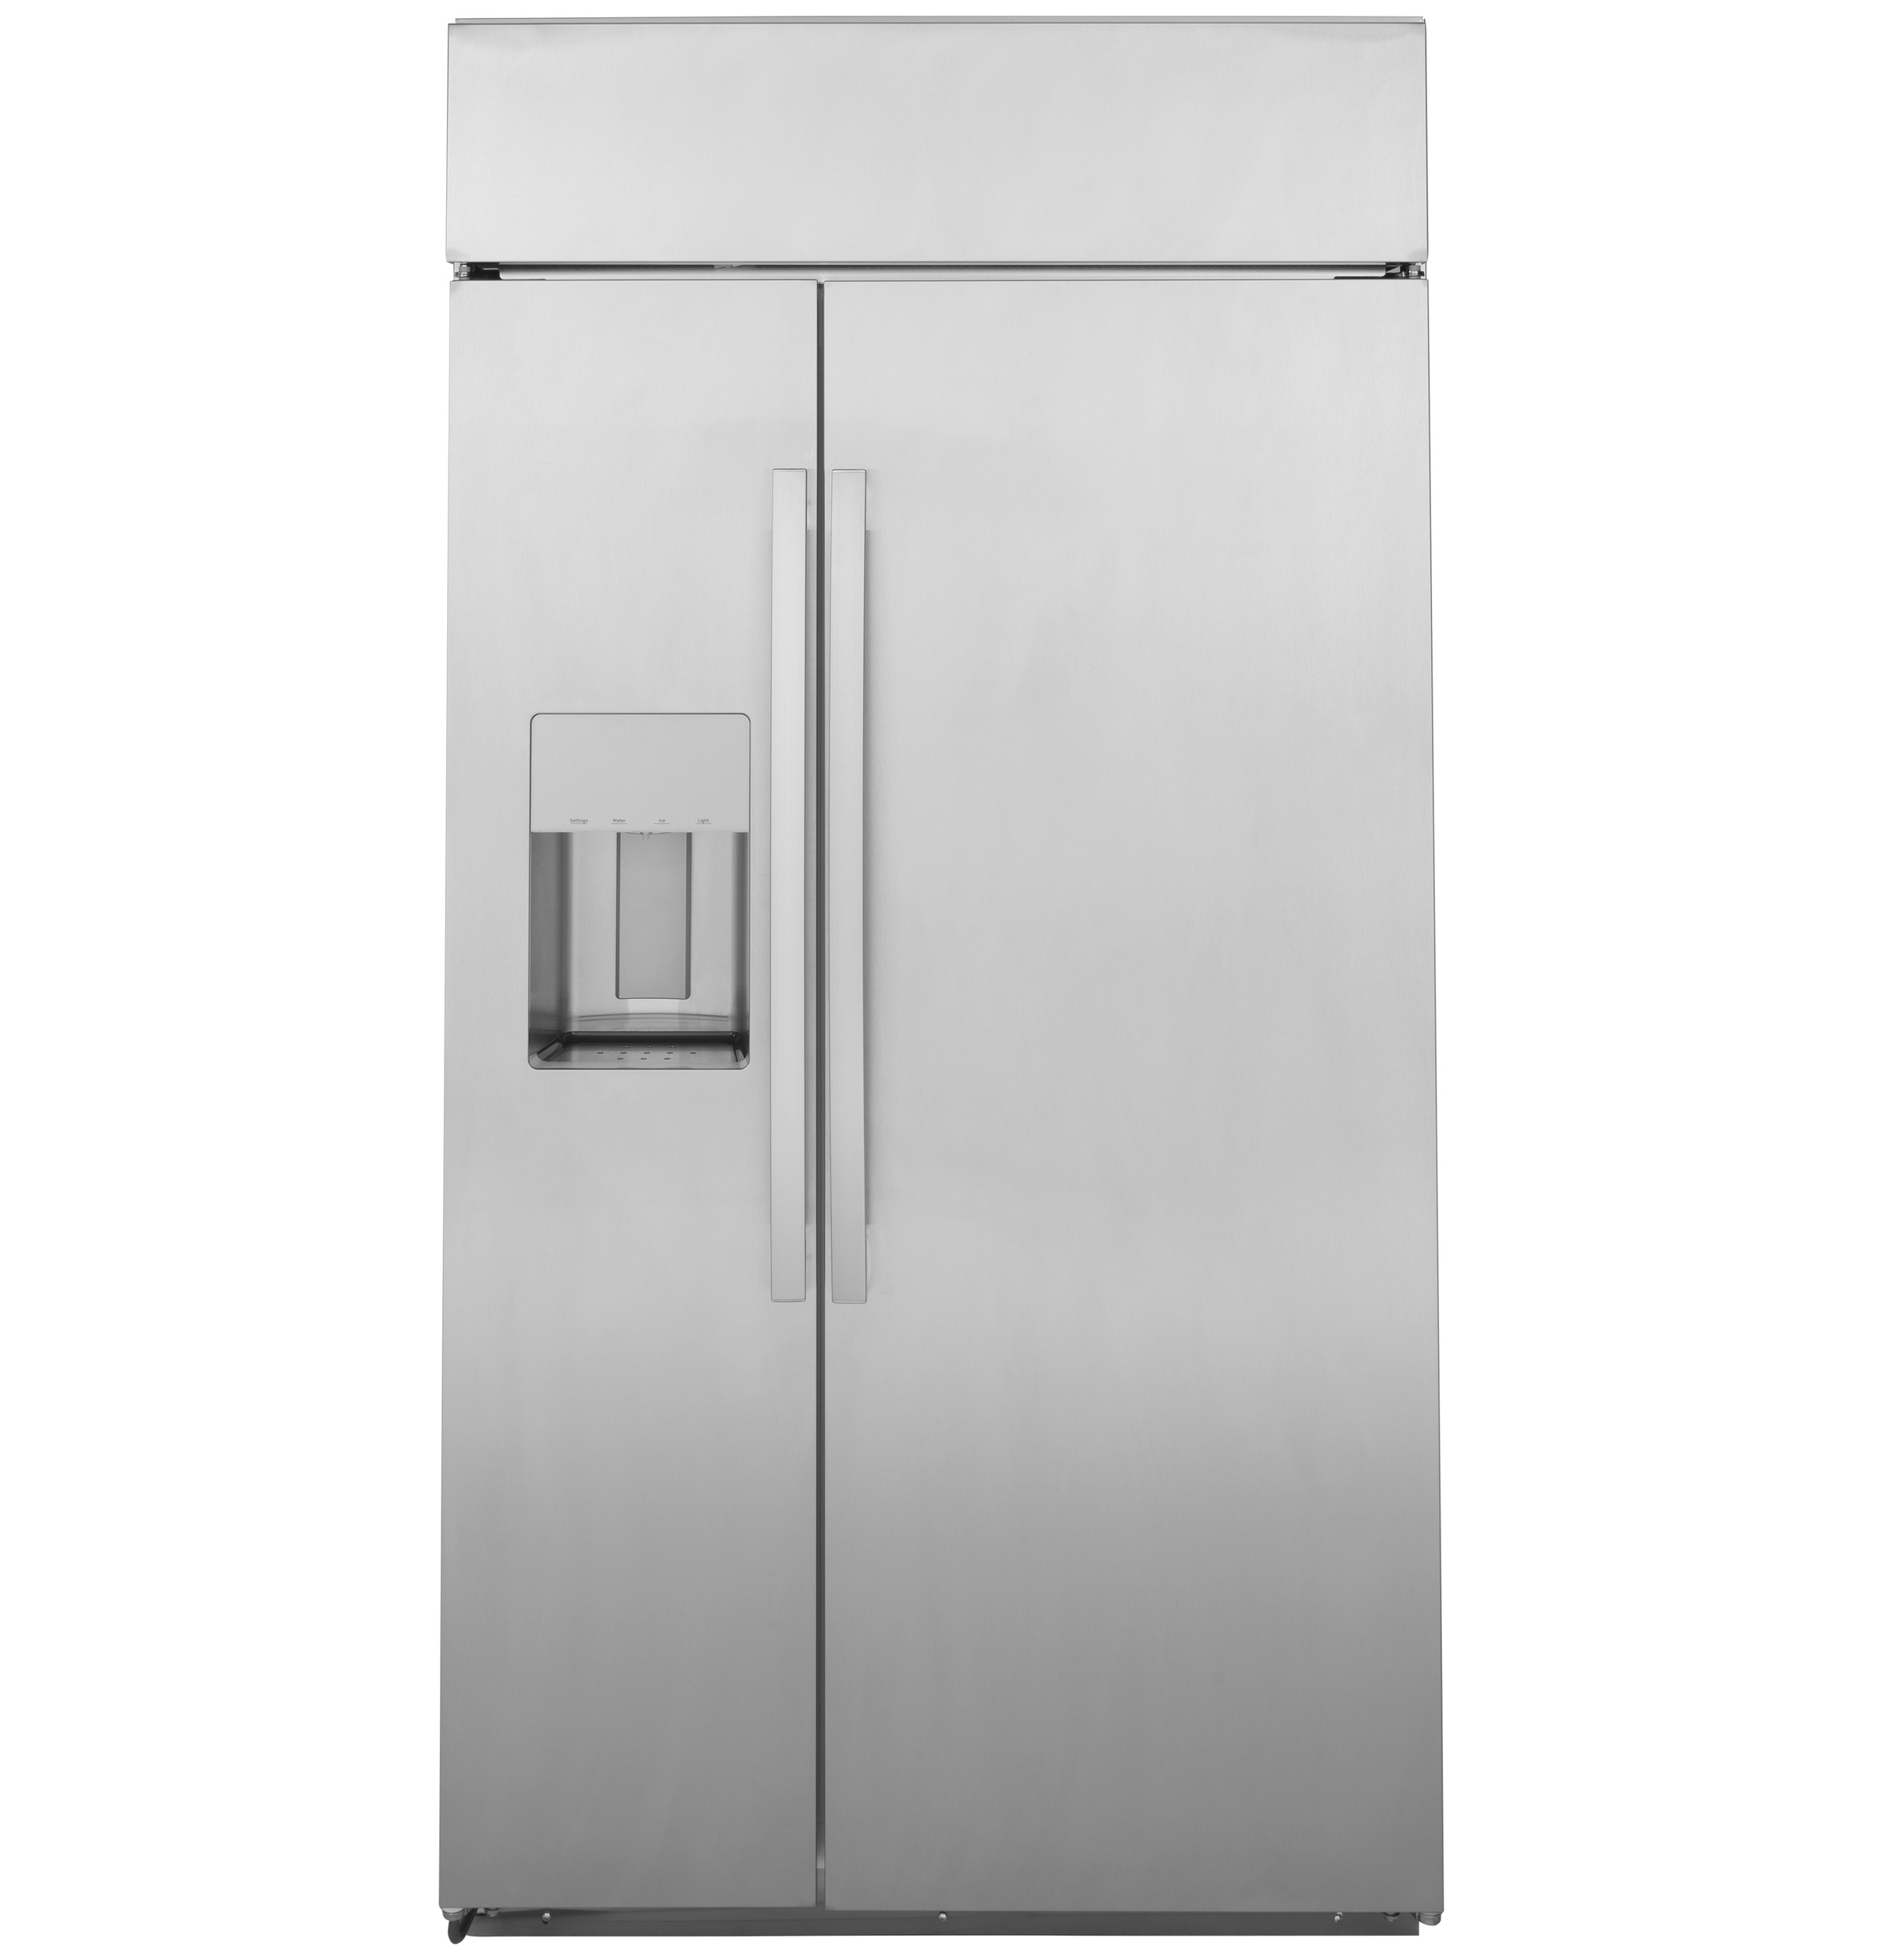 "GE Profile GE Profile™ Series 42"" Smart Built-In Side-by-Side Refrigerator with Dispenser"